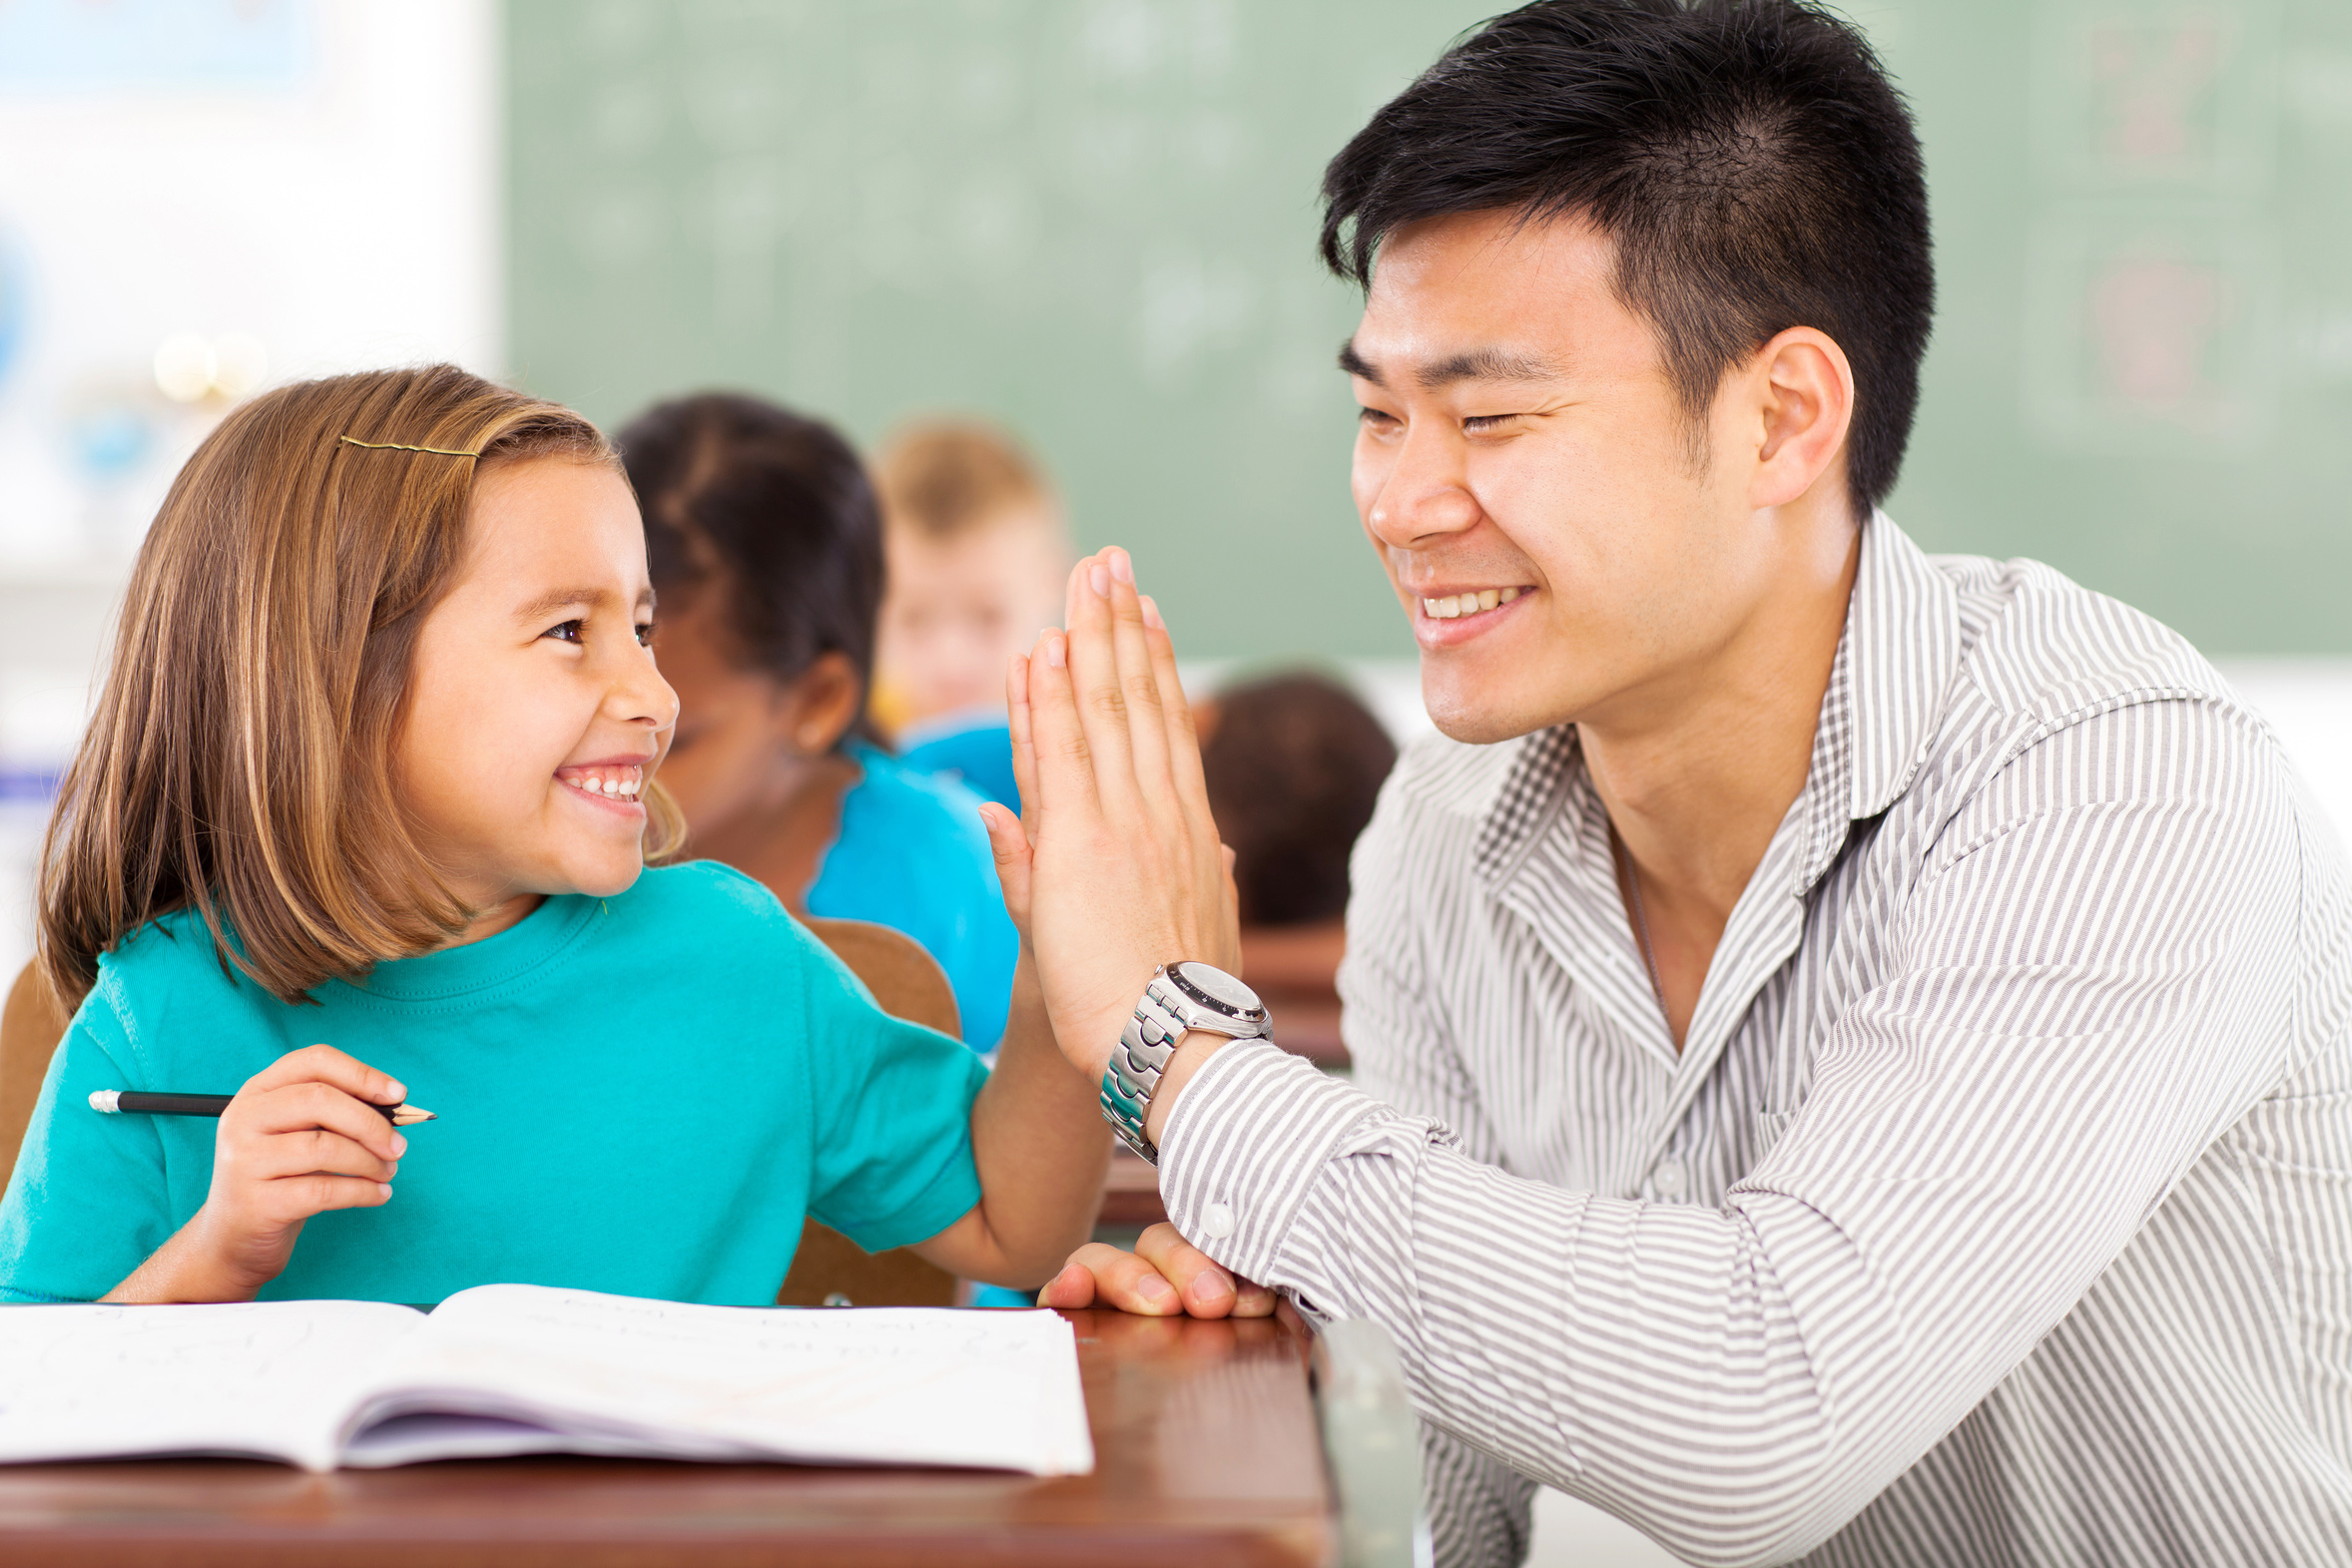 student and teacher high-fiving in class